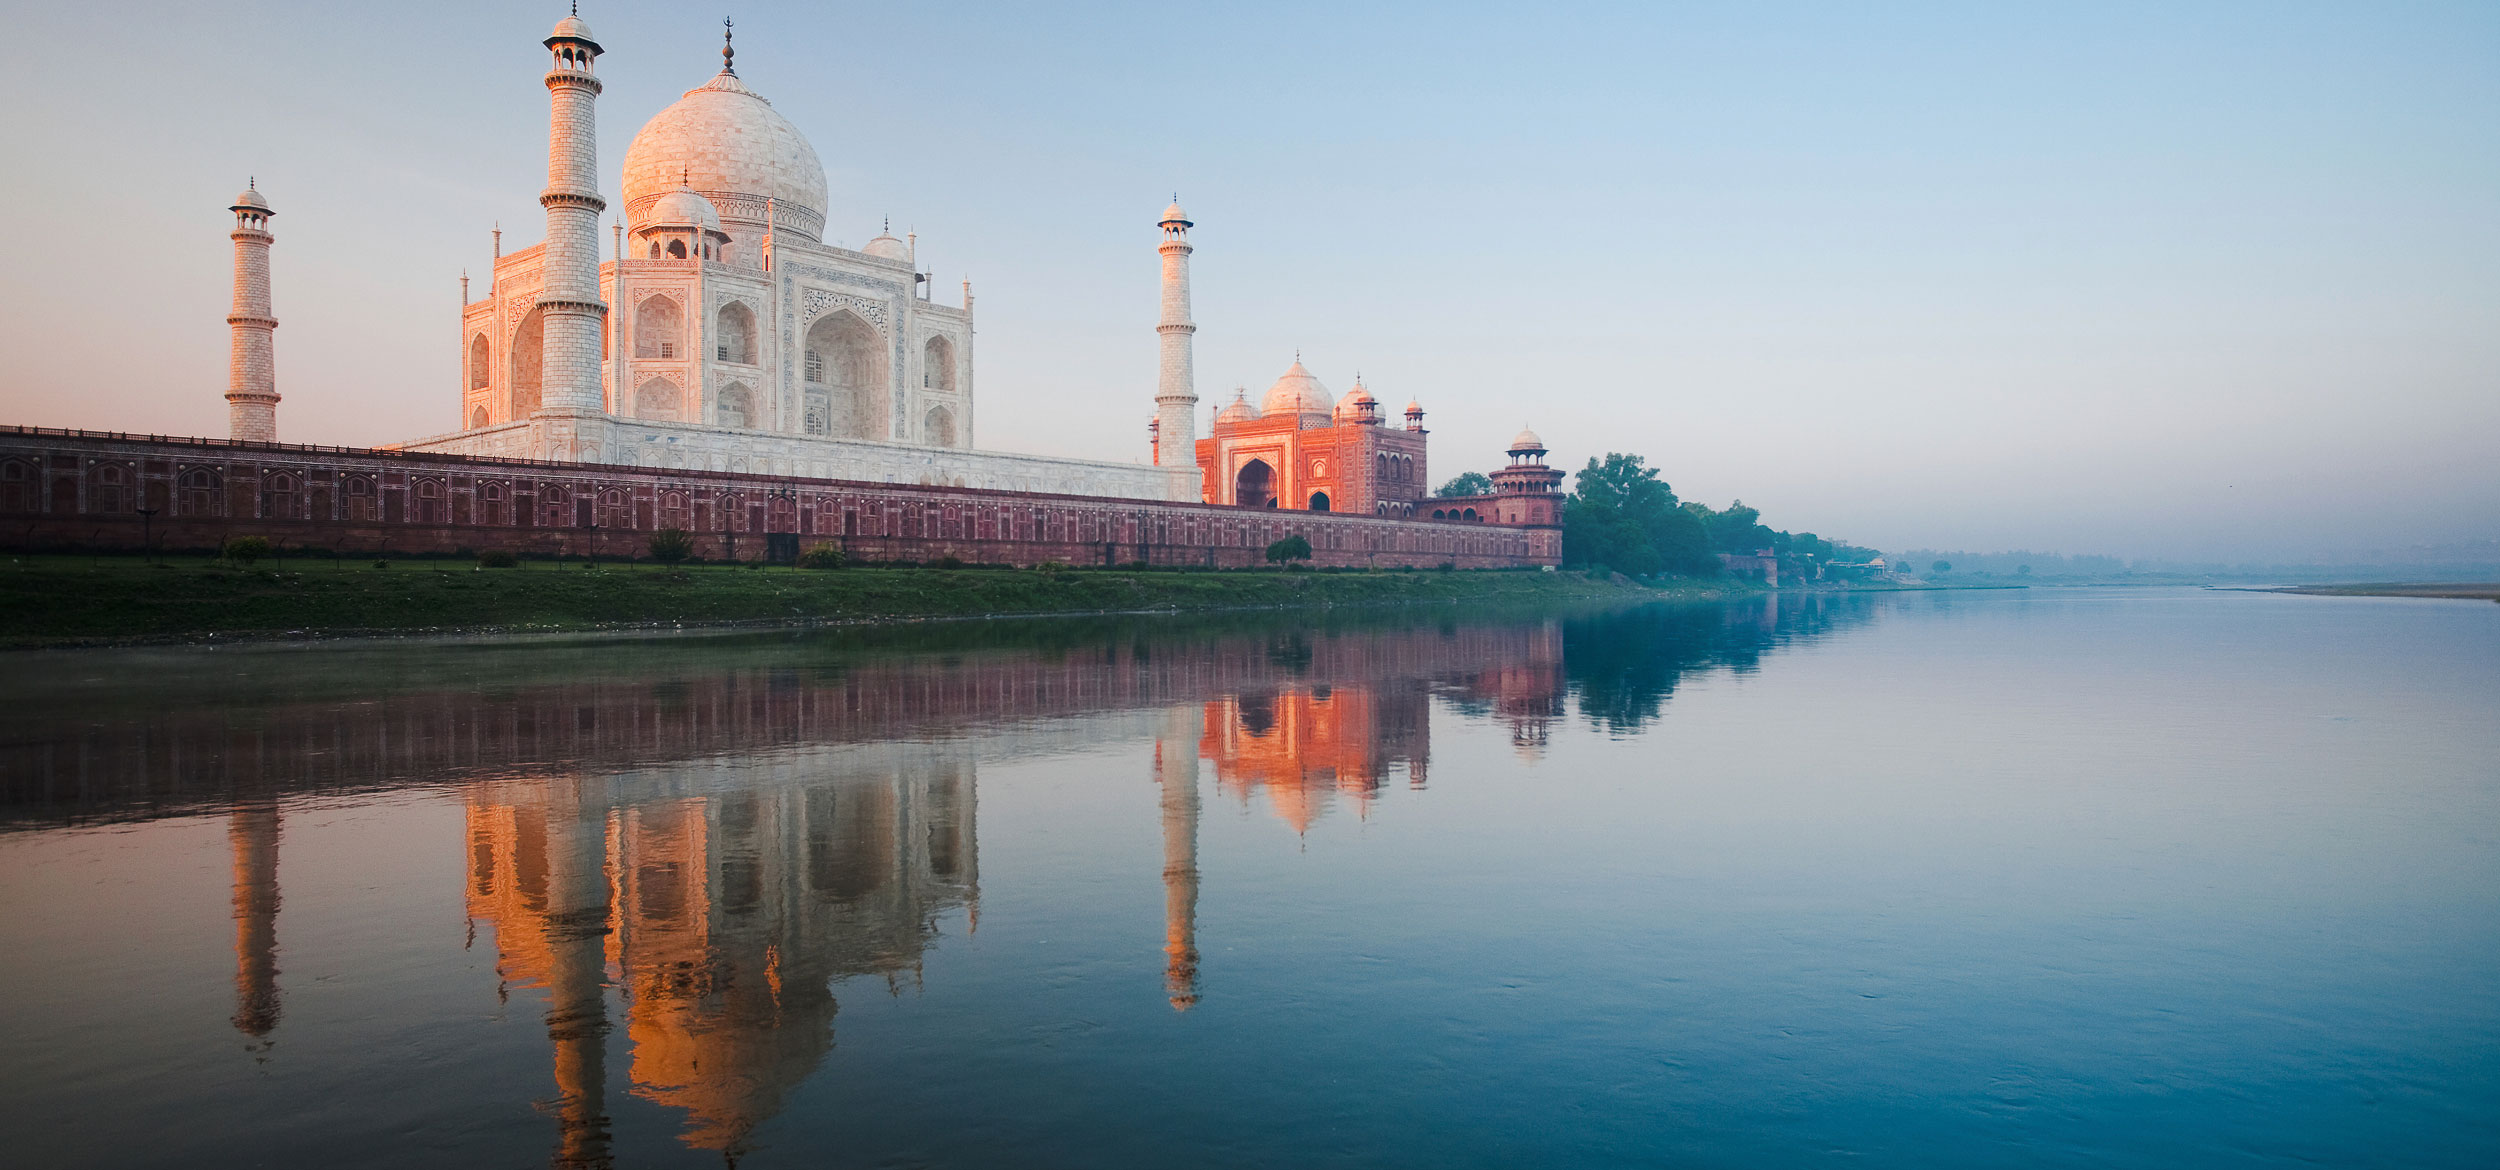 View of the Taj Mahal from Yamuna River in Agra, India.